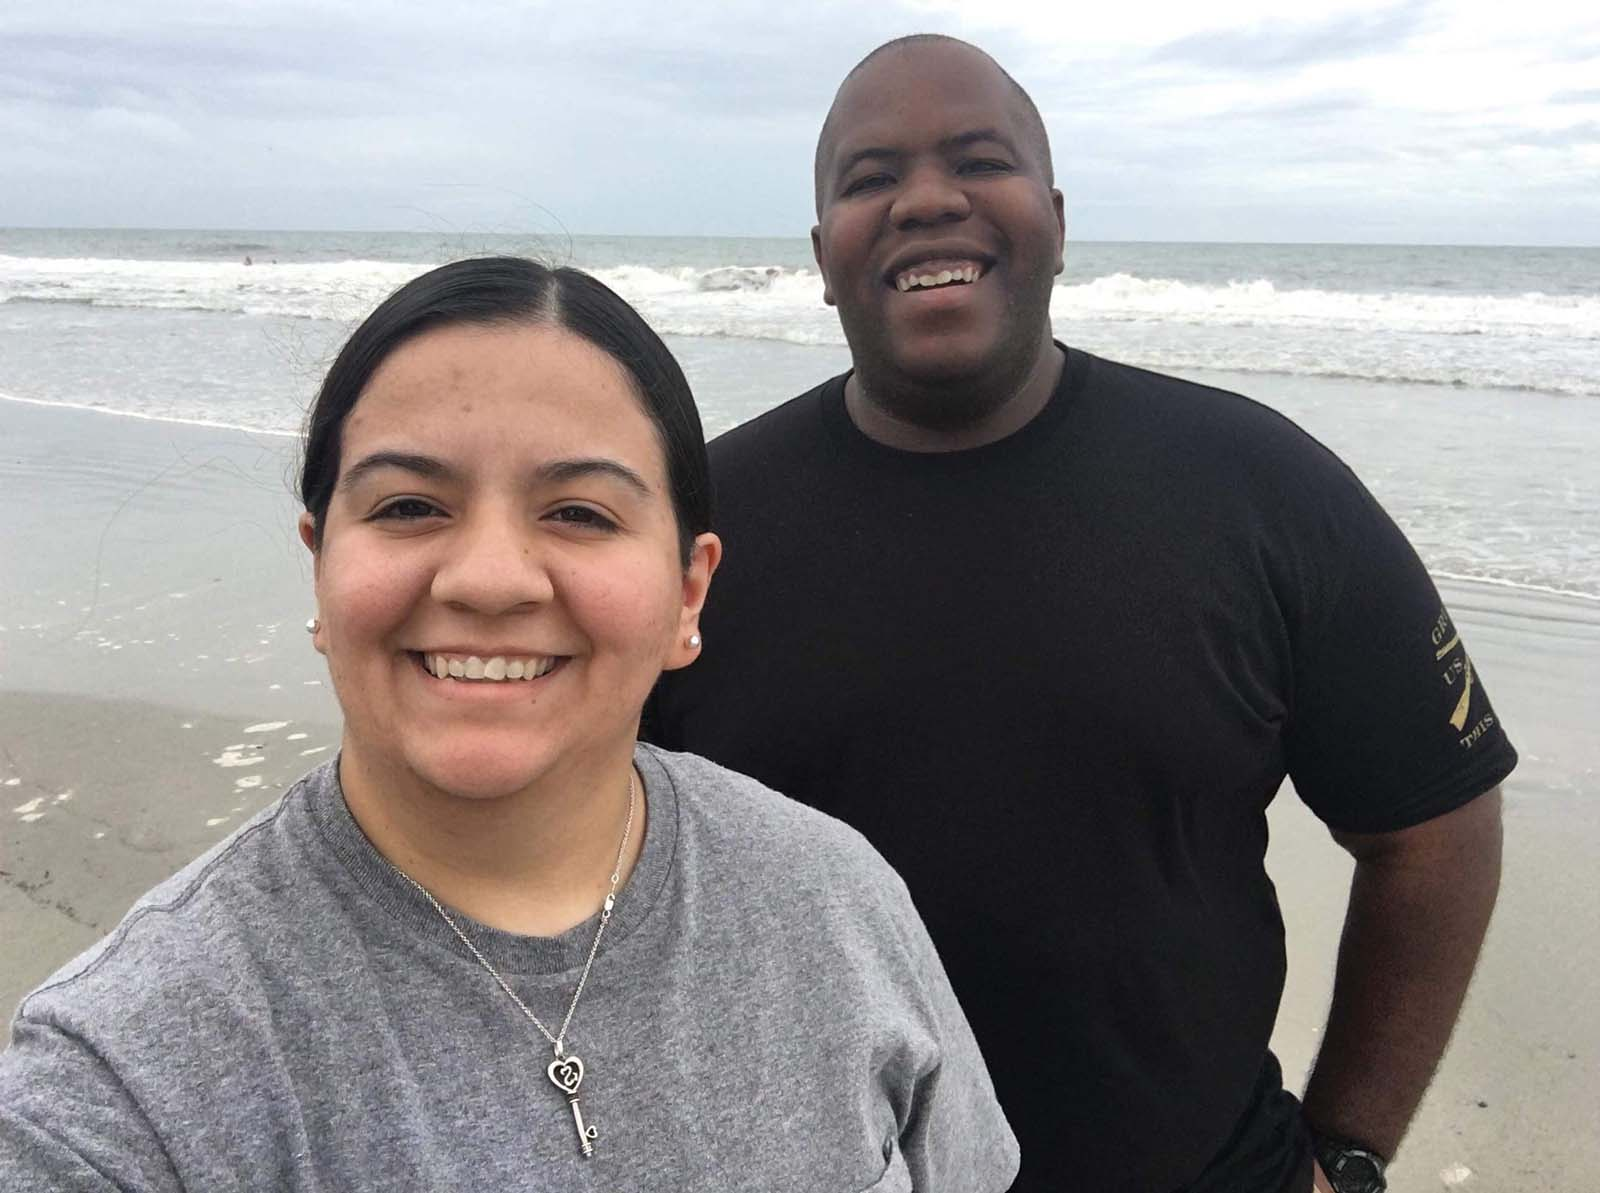 Couple smiling together on the beach